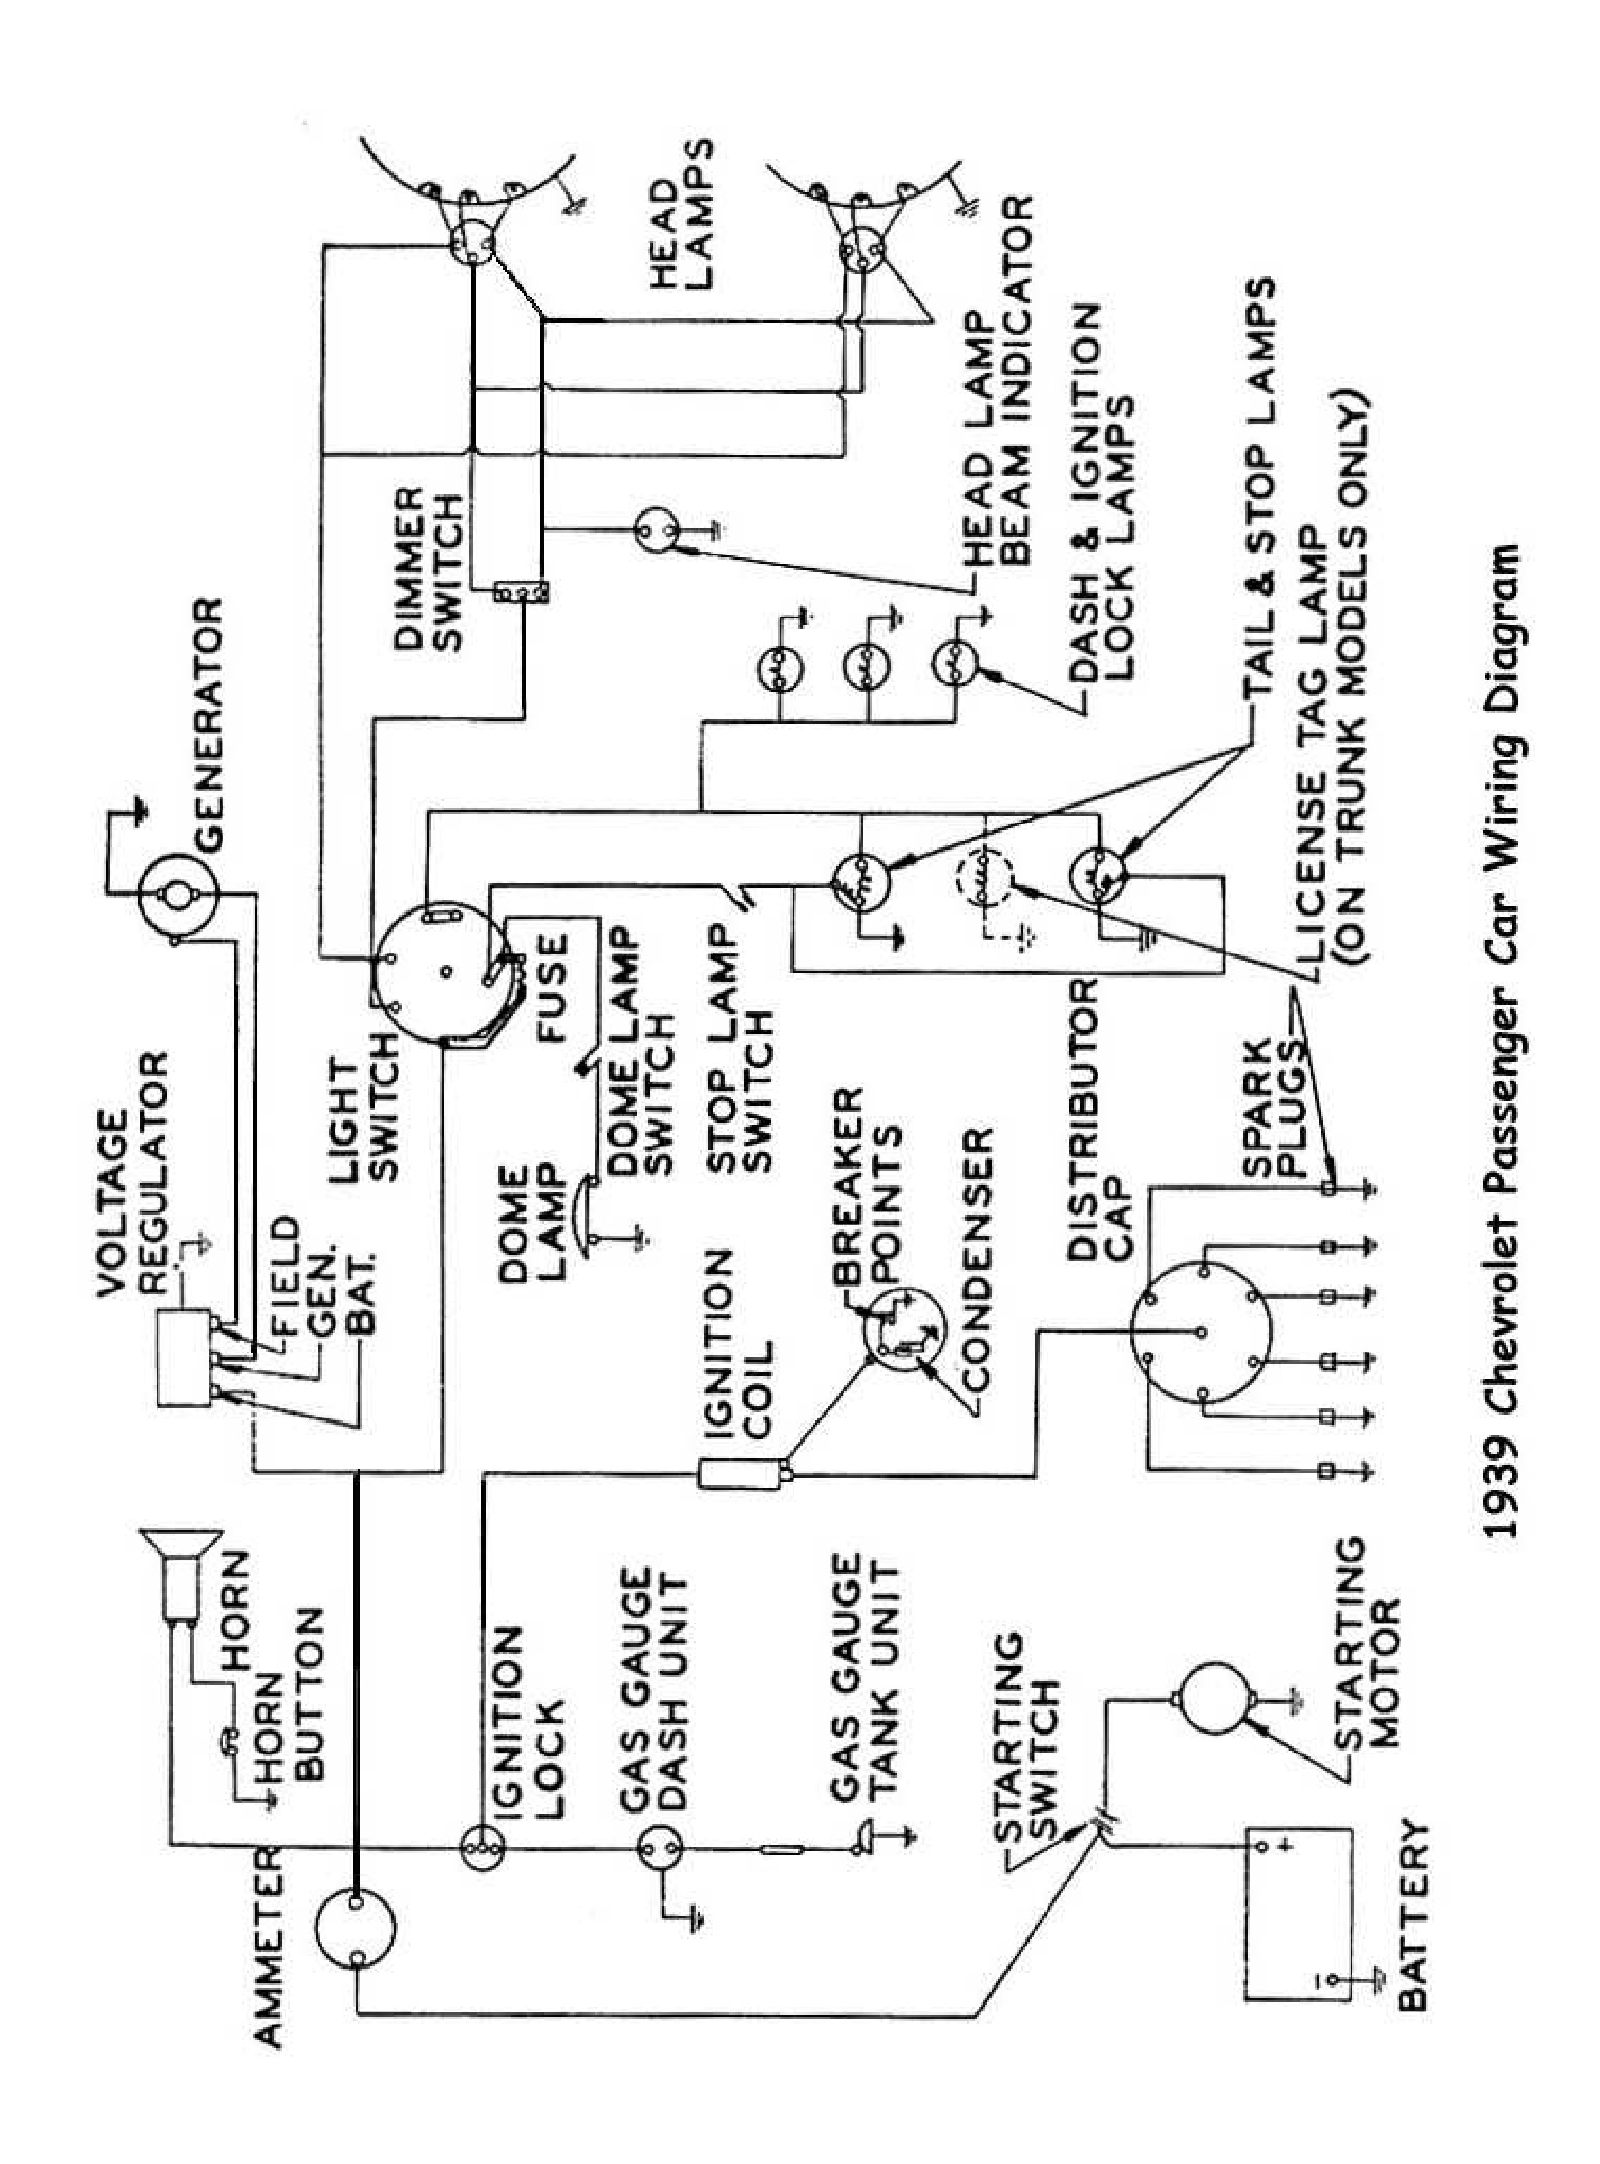 39car chevy wiring diagrams 84 chevy distributor wiring schematic at gsmx.co